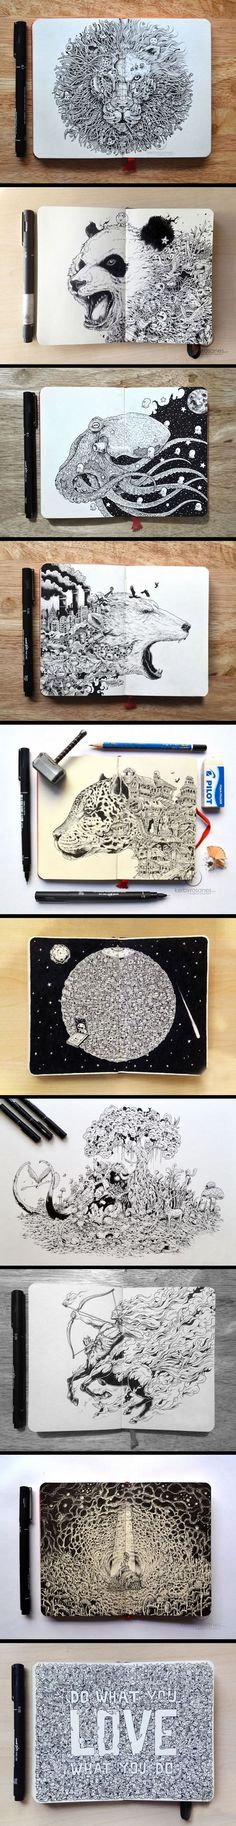 Hyper-Detailed Drawings by KERBY ROSANES